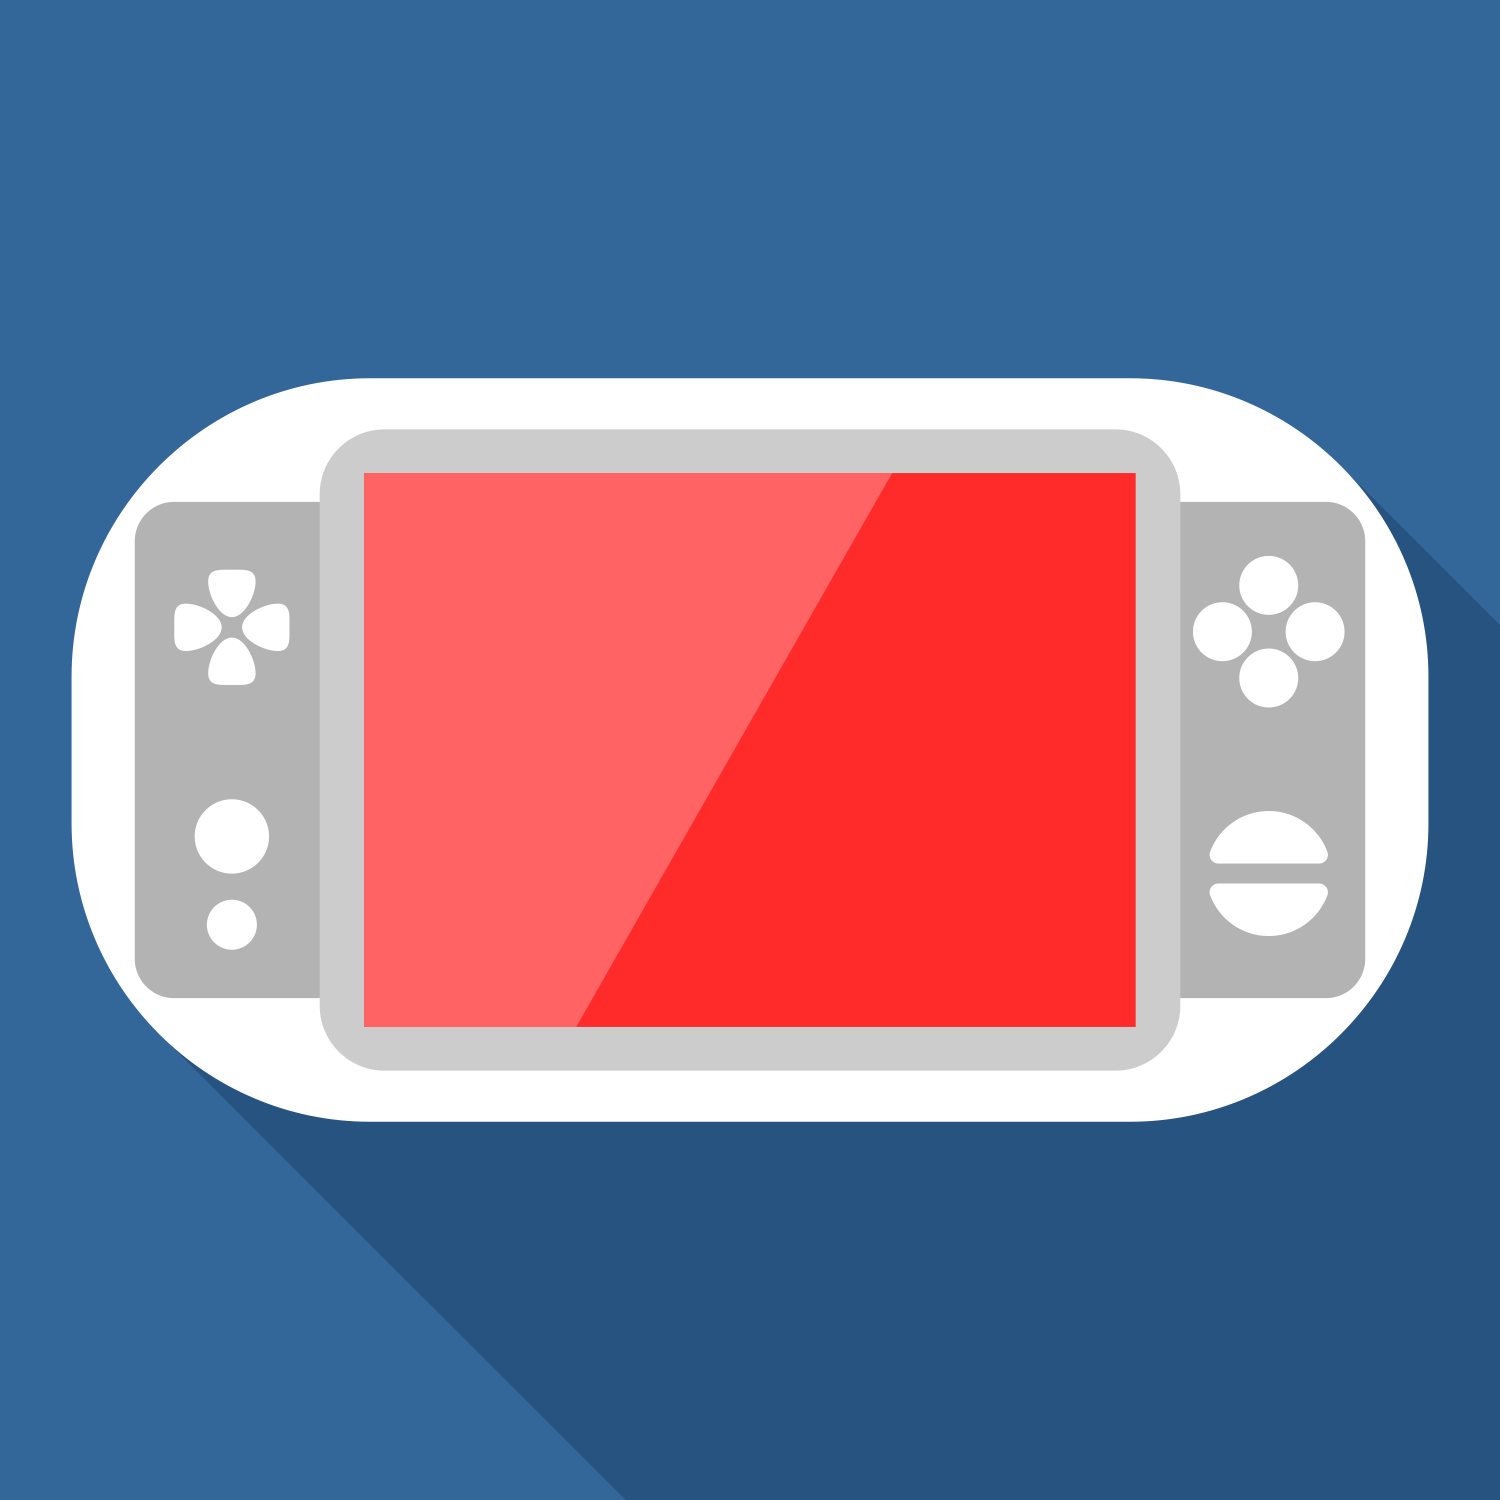 Portable Game Console. Editable Vector Graphics